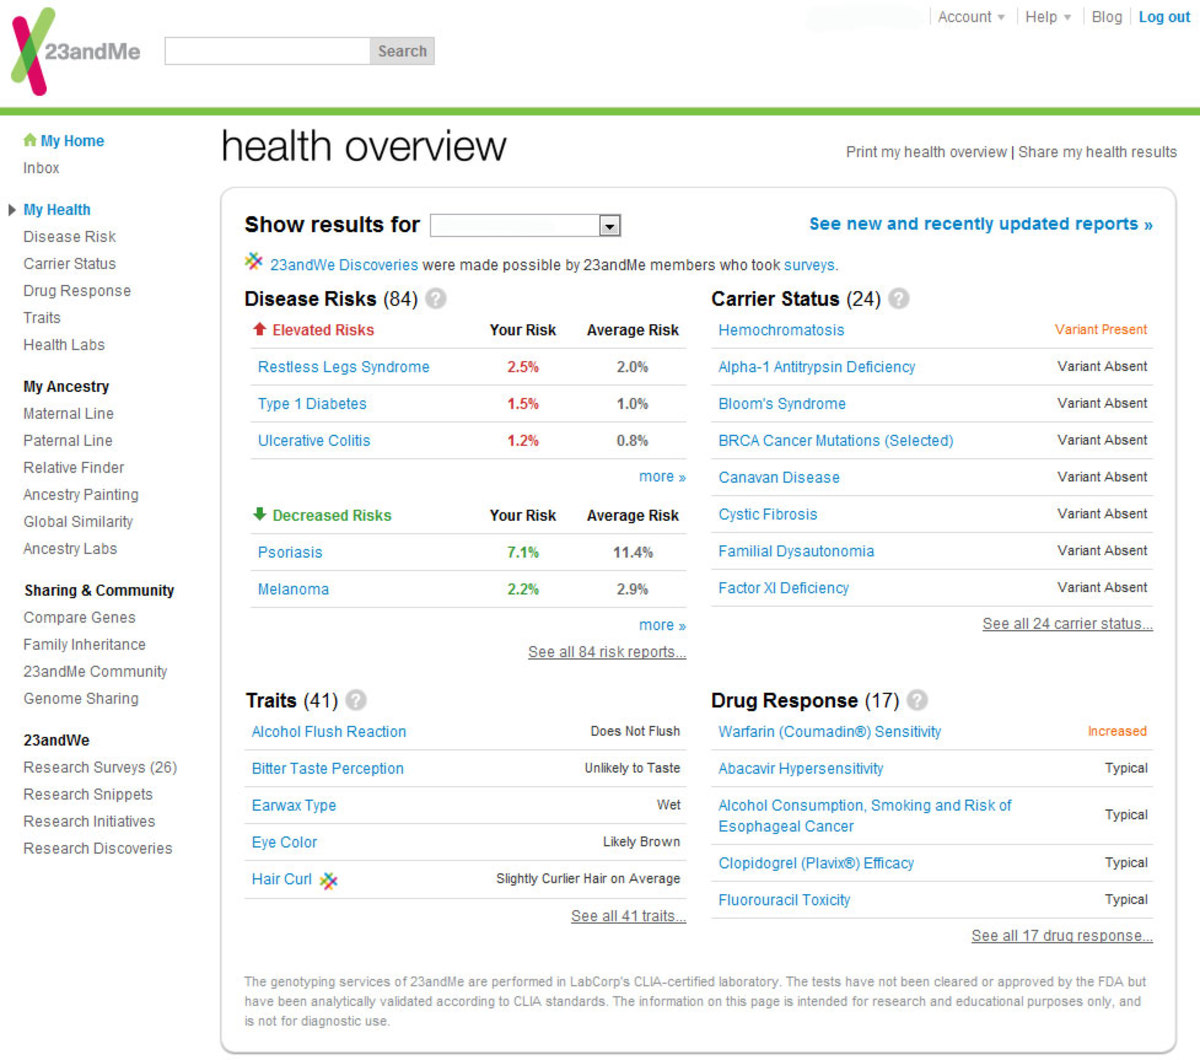 The Health Overview page highlights your disease risks, carrier status for certain conditions, drug sensitivities, and other interesting health info like whether your earwax is wet or dry